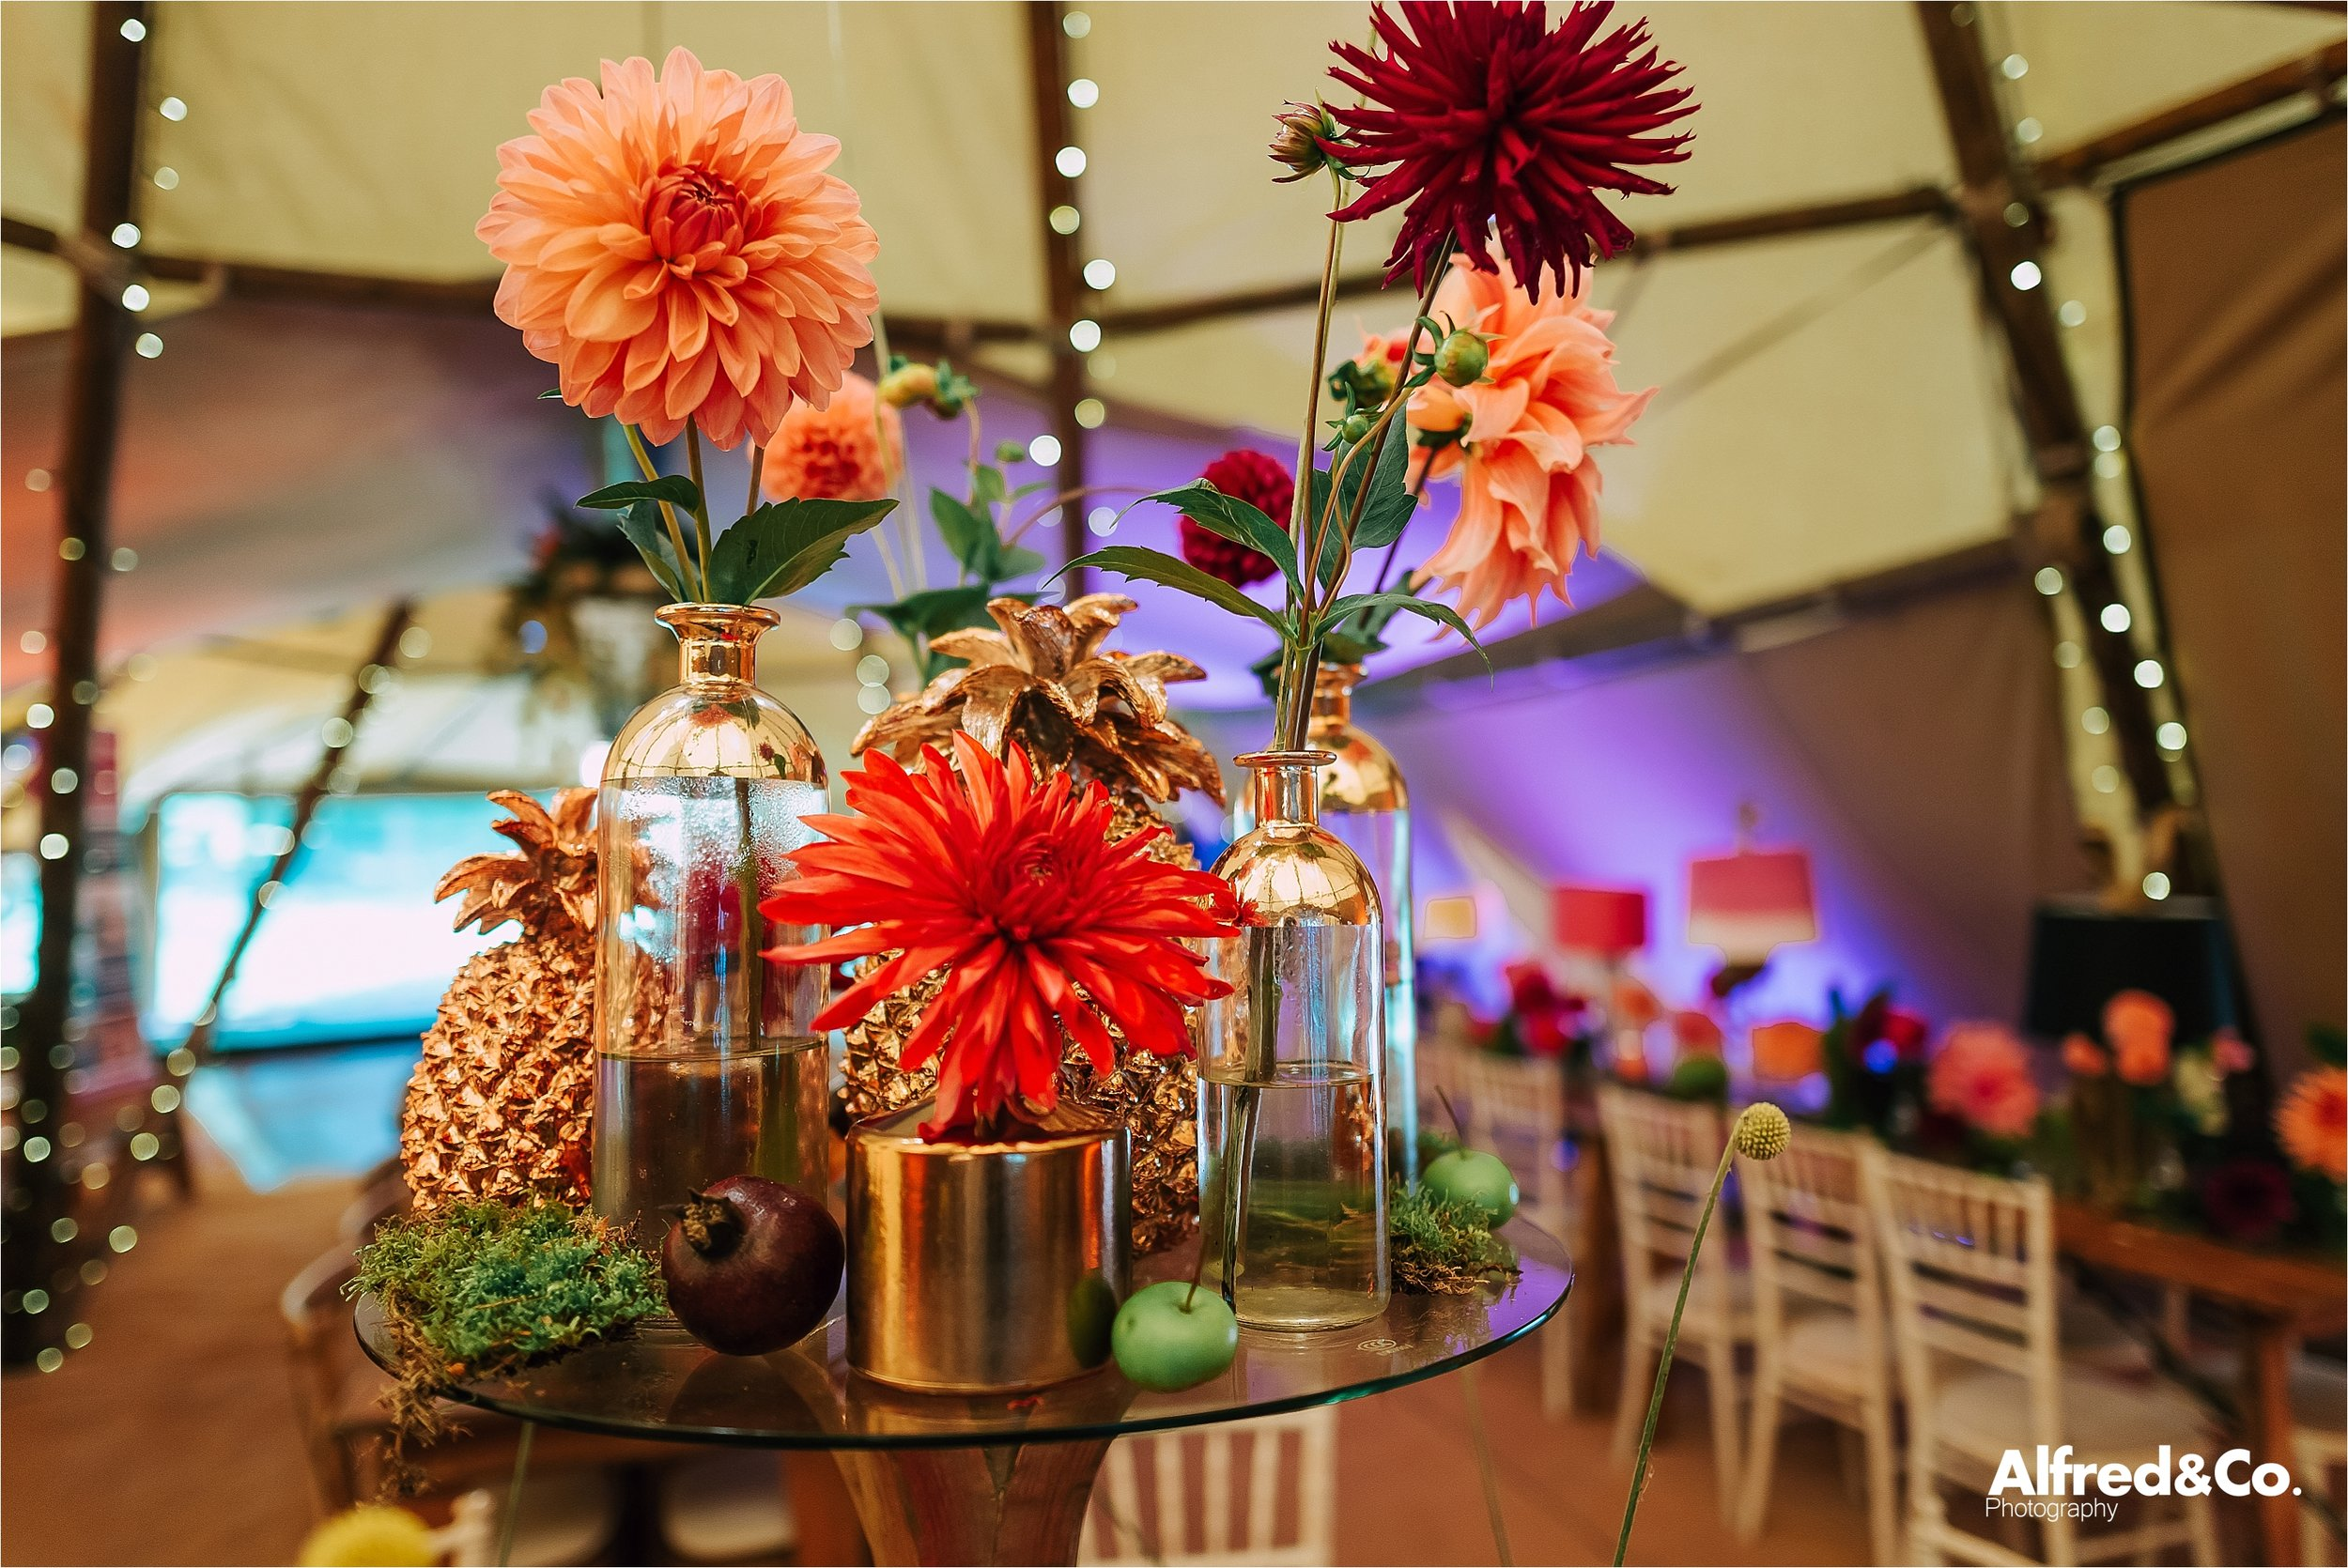 tipi+wedding+dorfoldhall+bigchieftipis+cheshire+lancashire+wedding+photographer+relaxed43.jpg